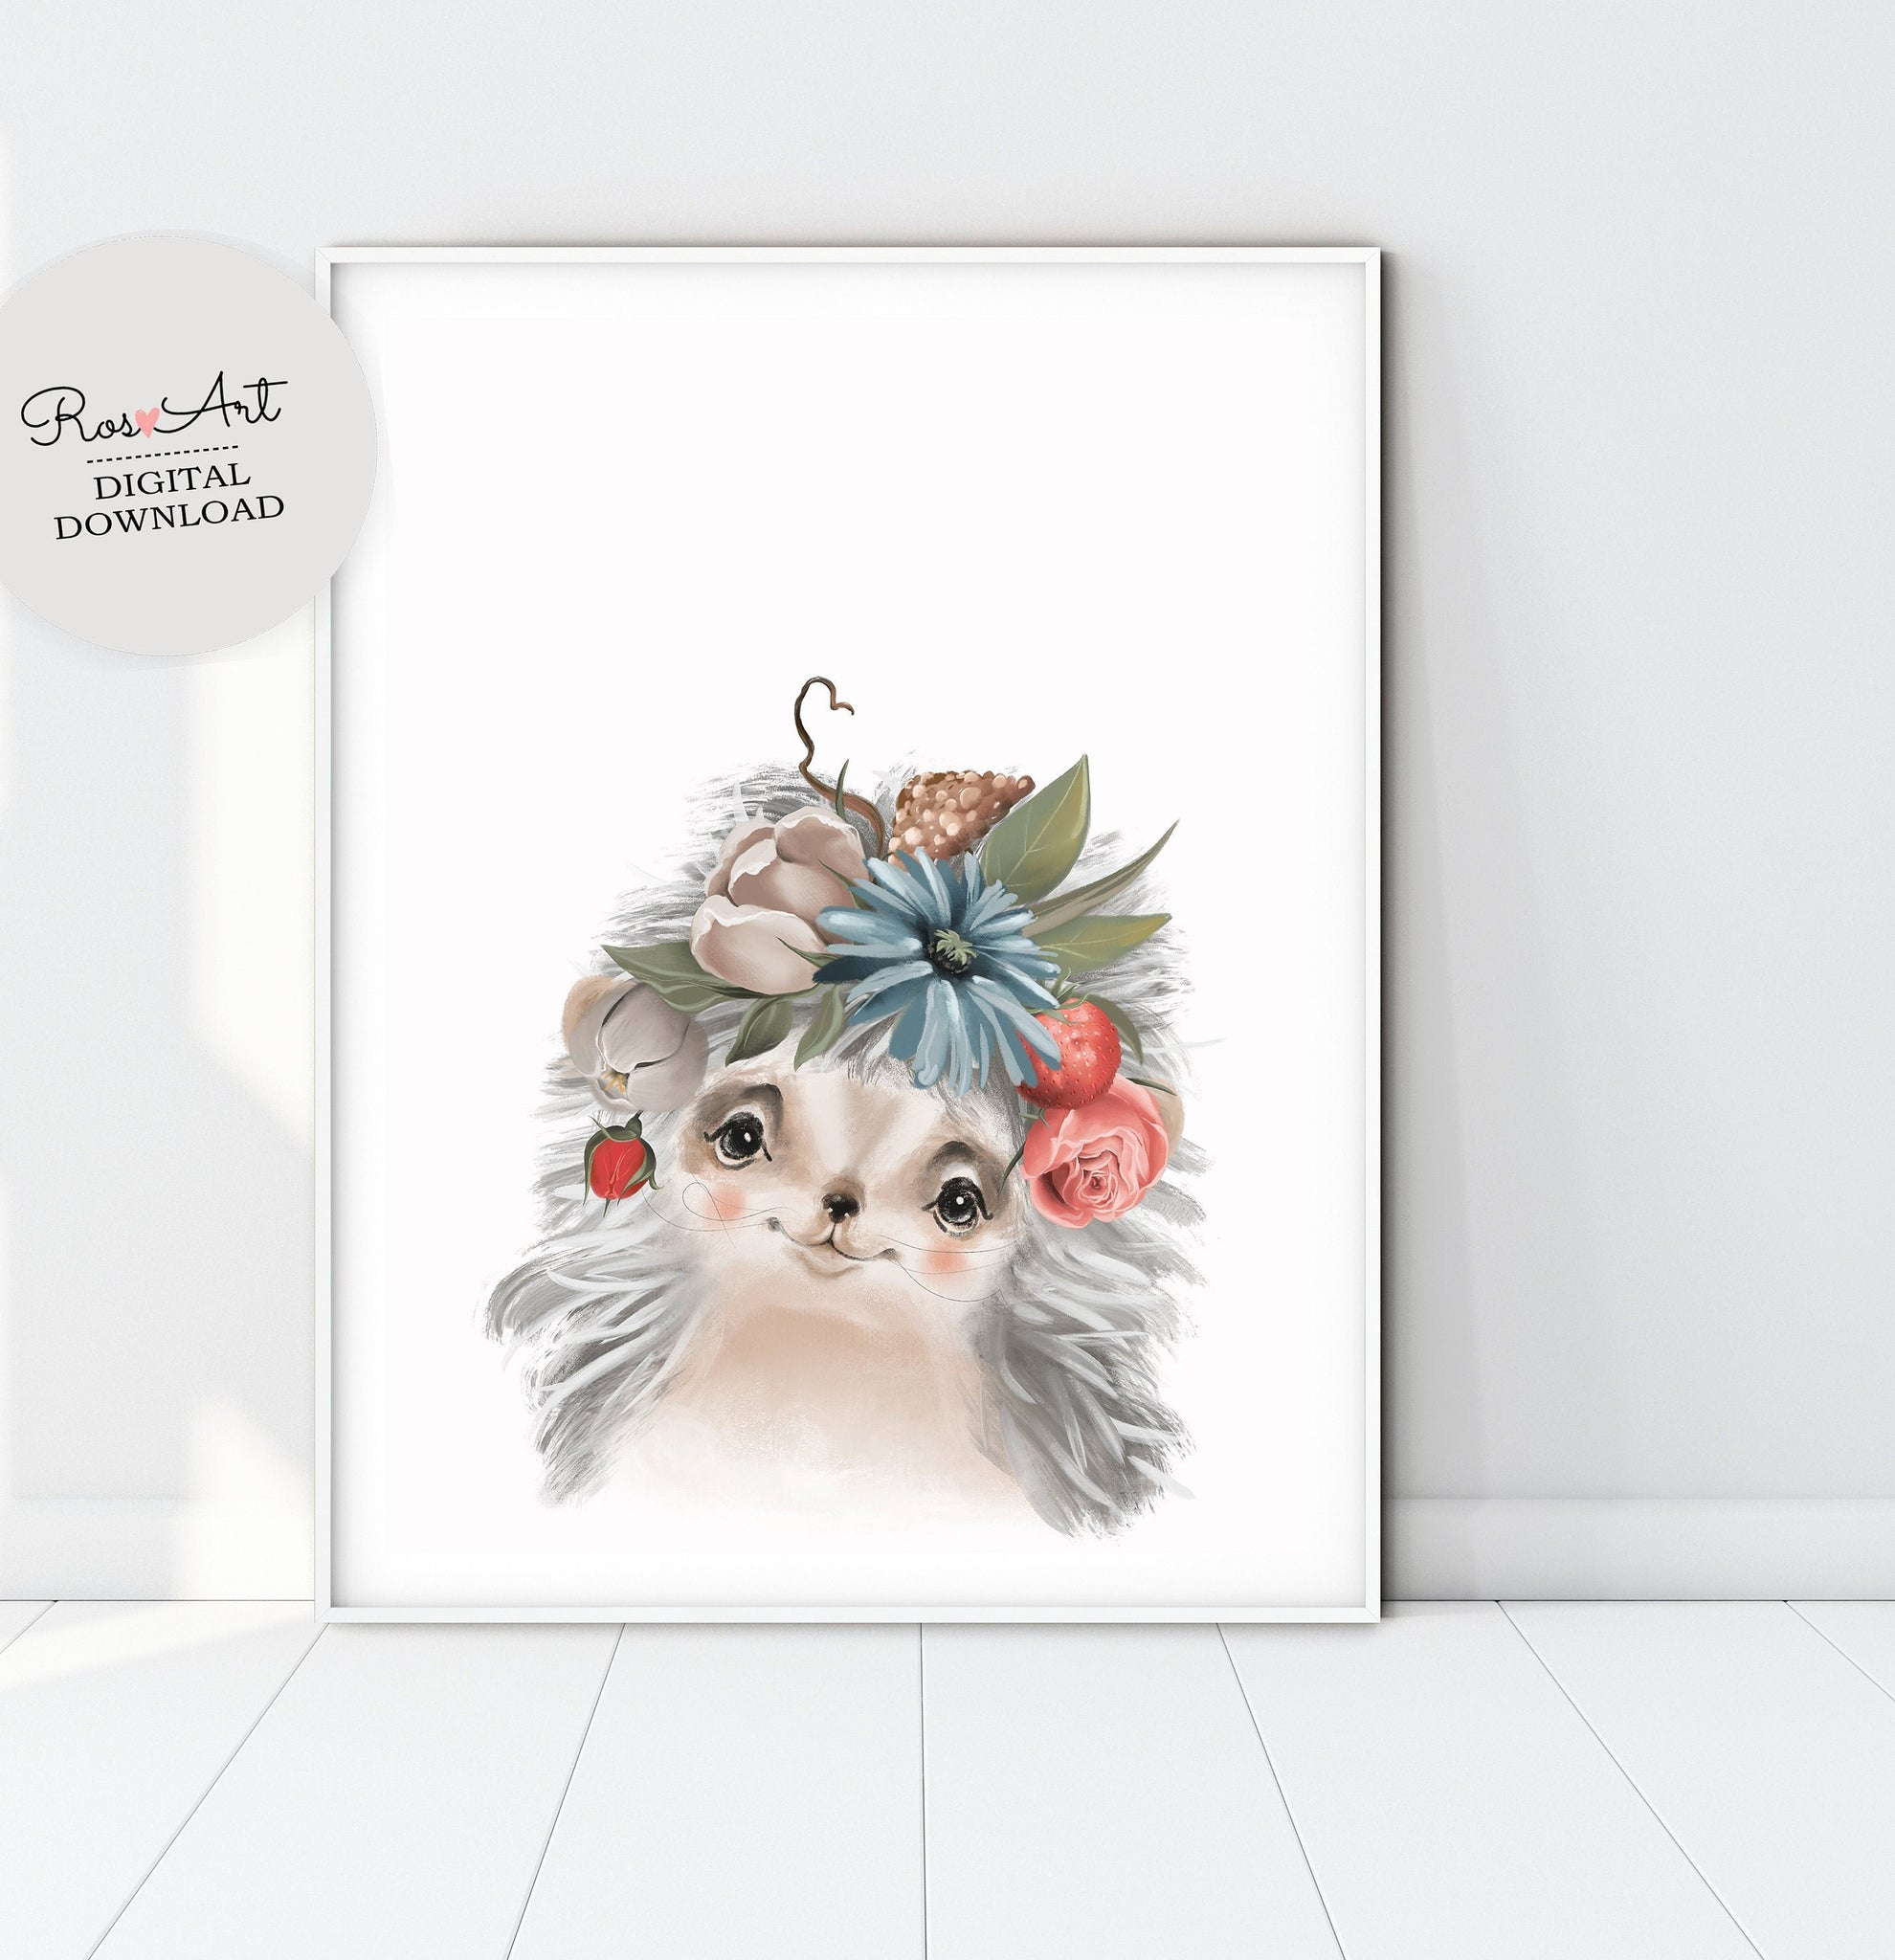 Hedgehog Print Hedgehog Art Print, Hedgehog Wall Art, Hedgehog Portrait, Hedgehog Art, Baby Girl Poster - Ros Ruseva